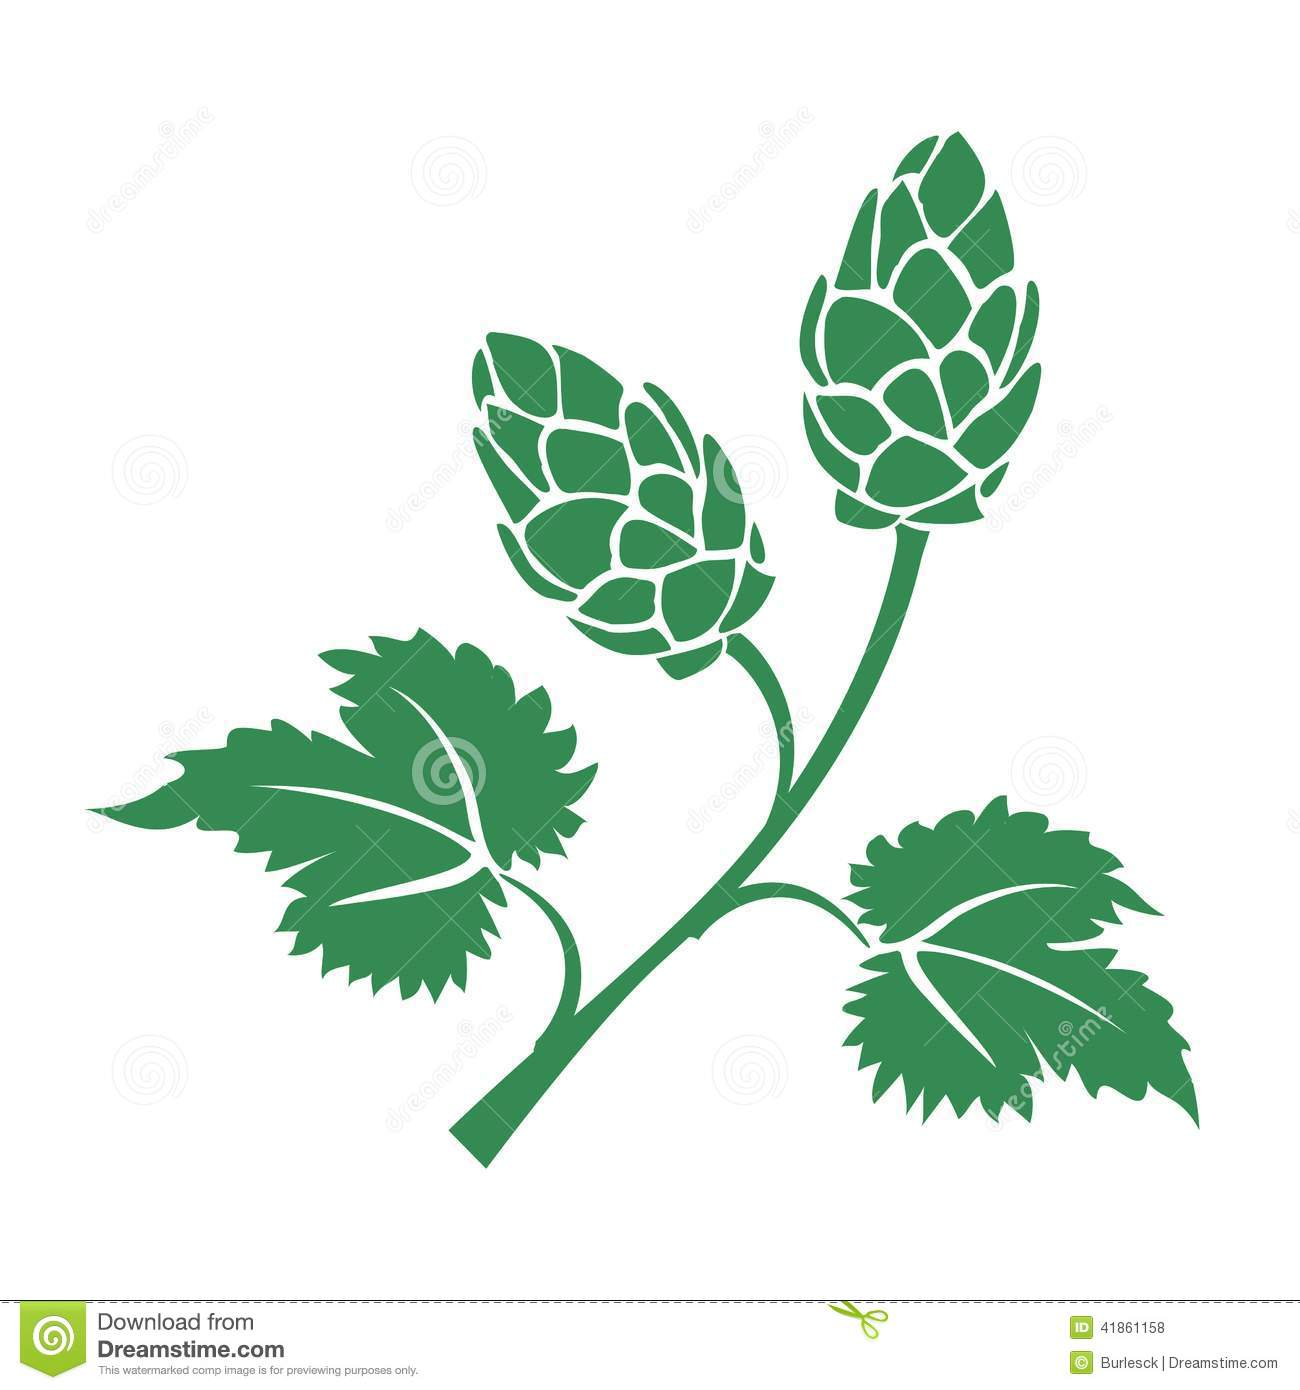 Green Vector Silhouette Hops Icon With Leaves And Cone Like Flowers